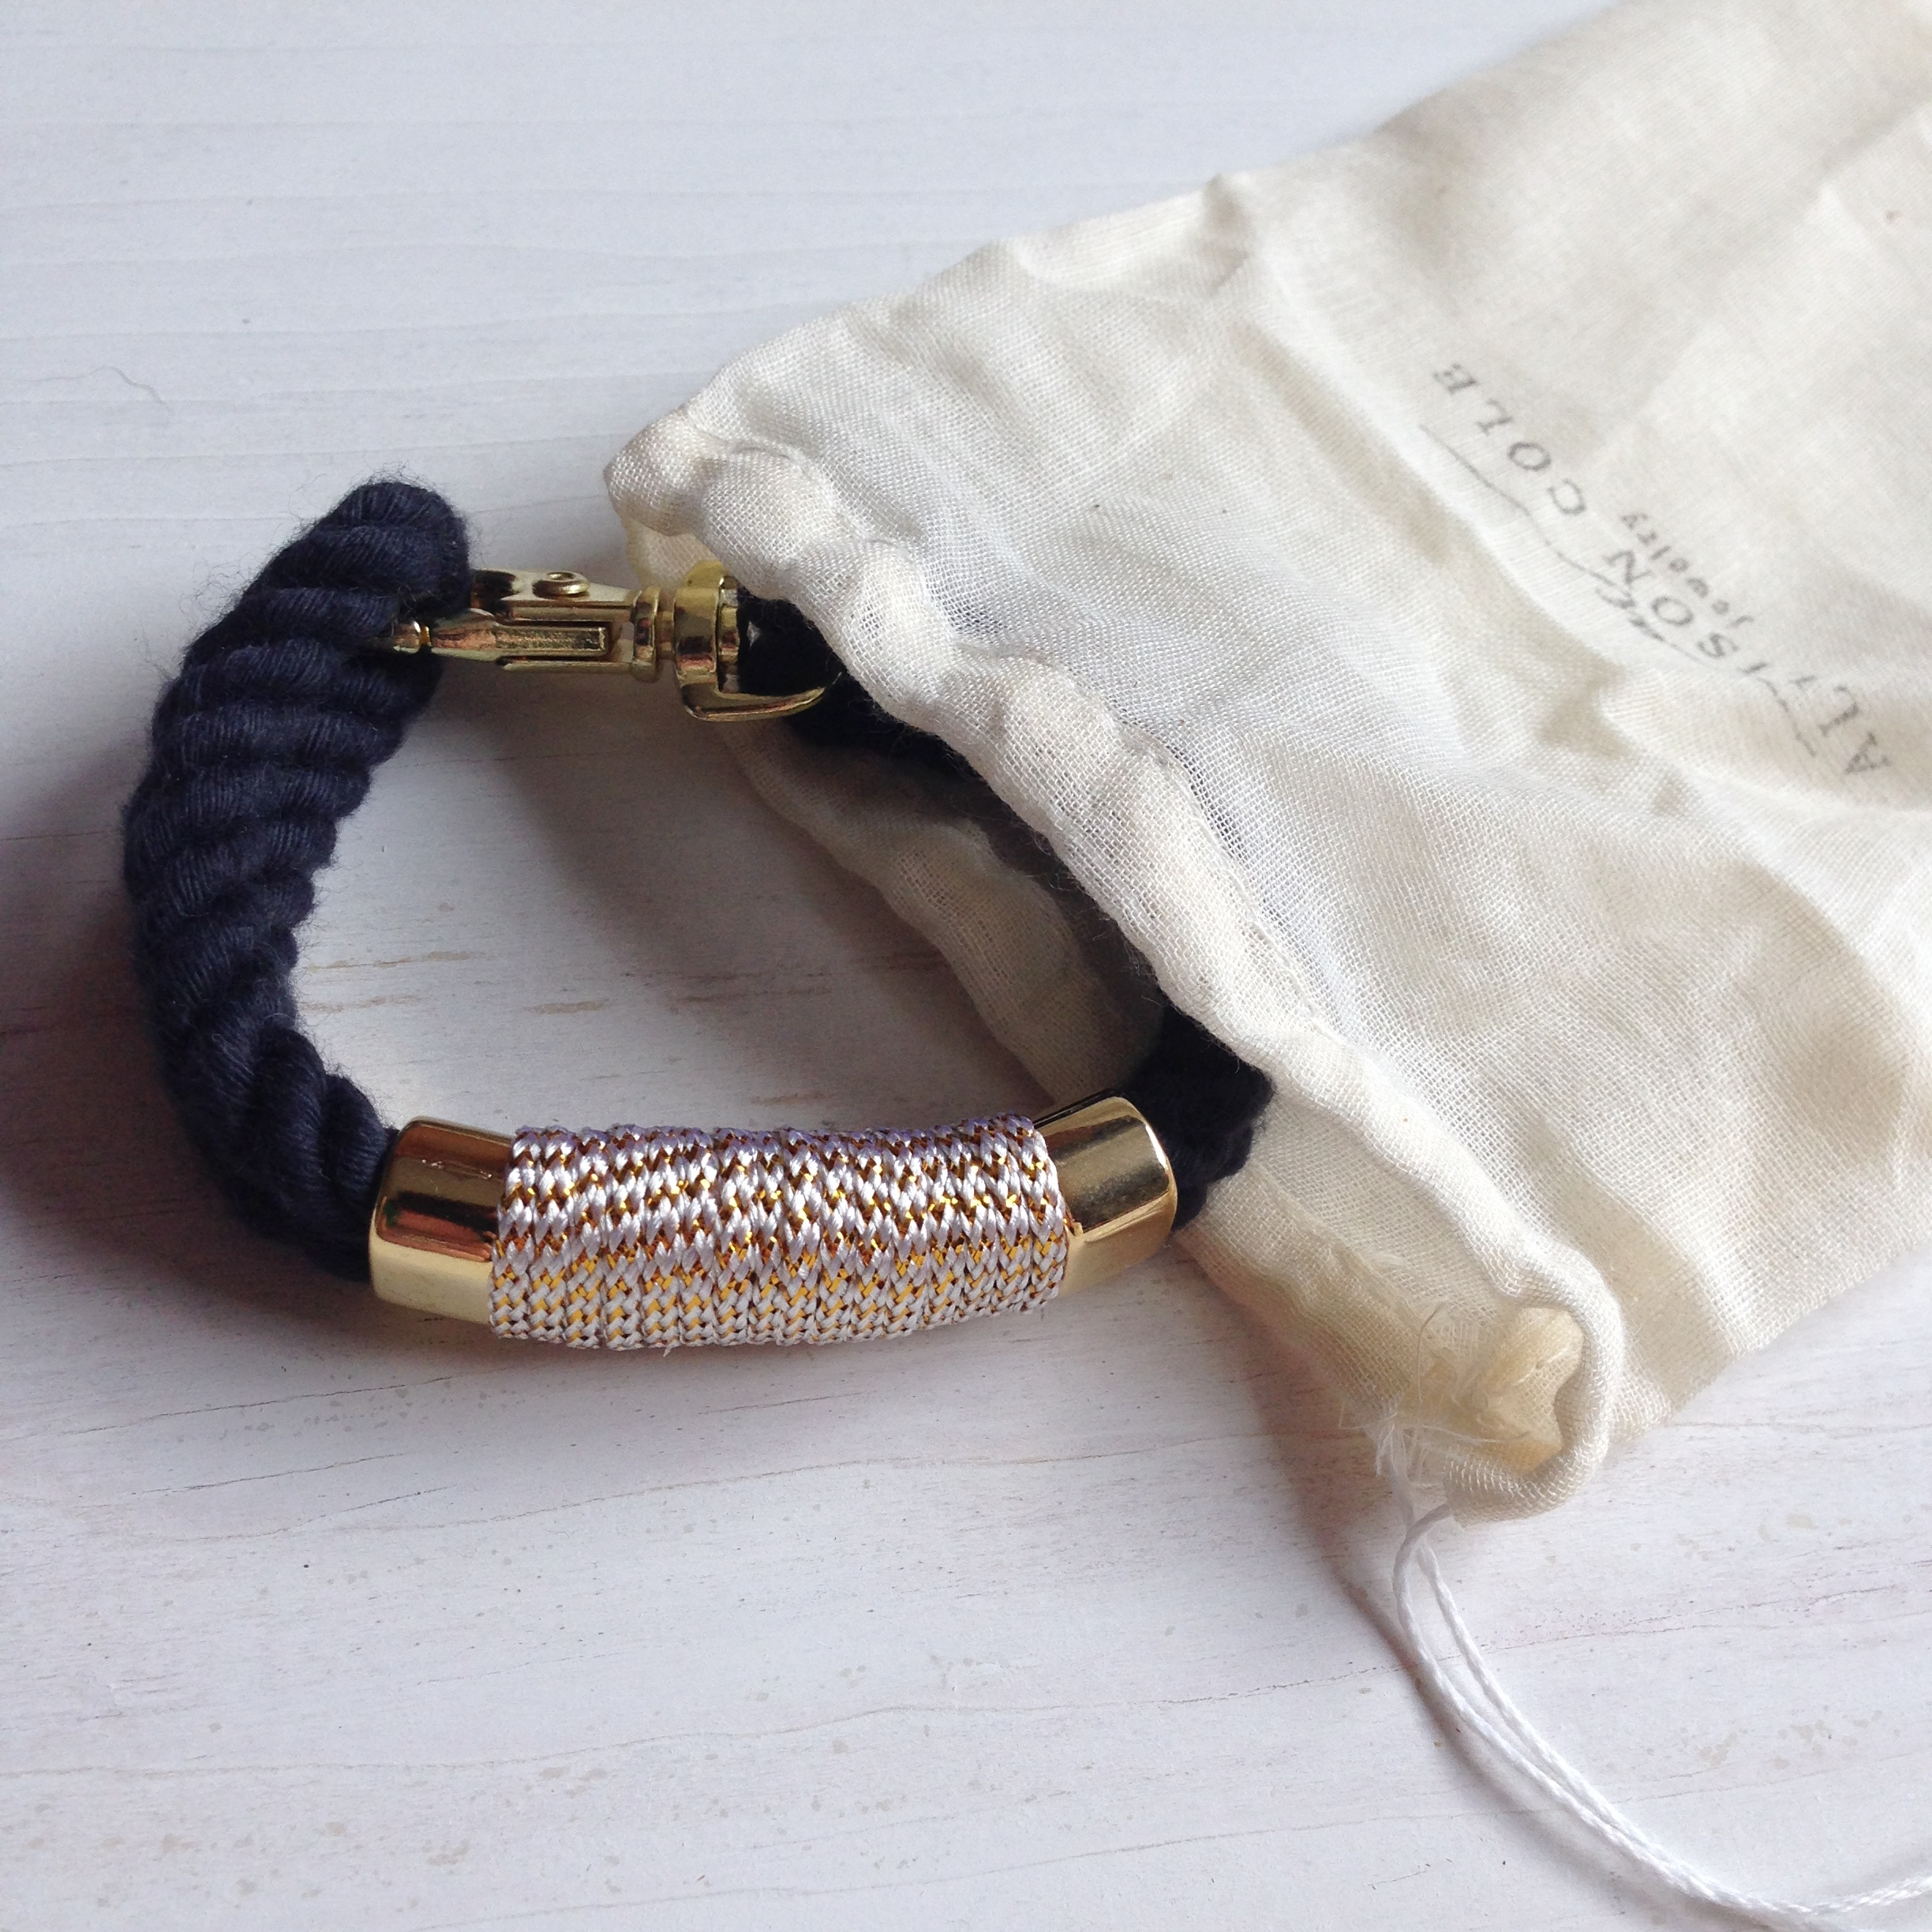 Nautical style rope bracelets from Allison Cole Jewelry